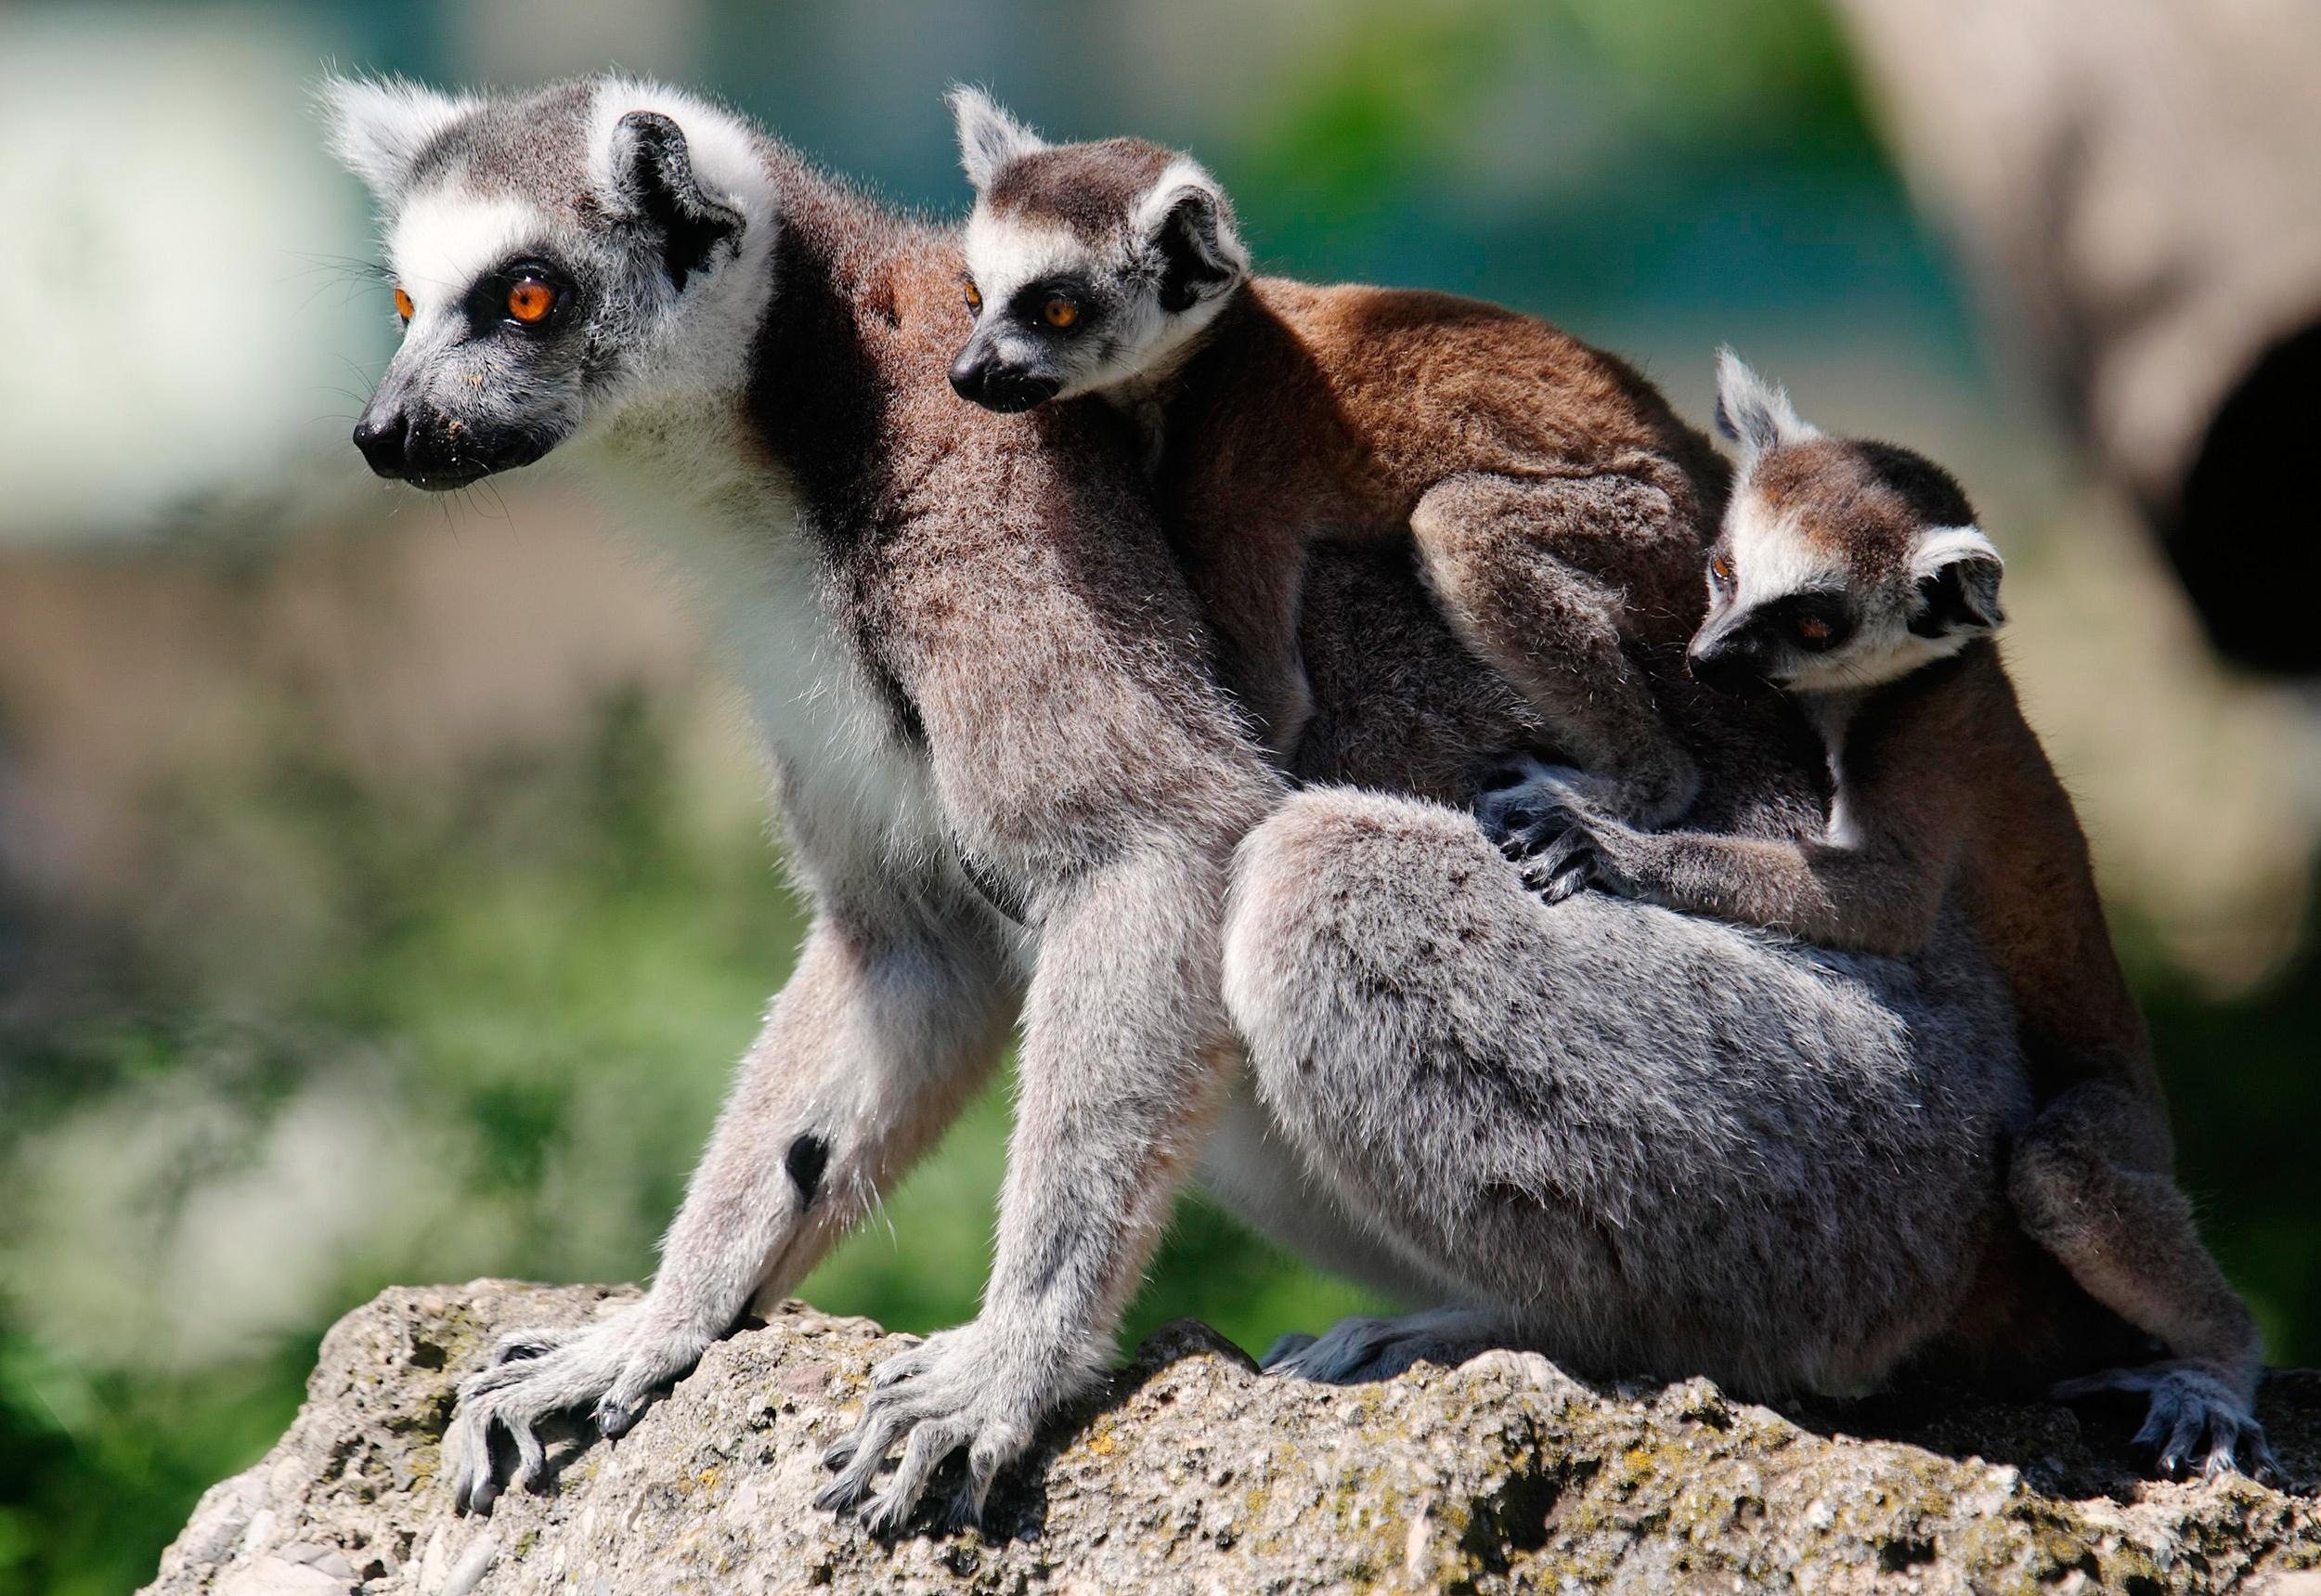 Image: A Lemur with its seven-week-old cubs clinging to its back